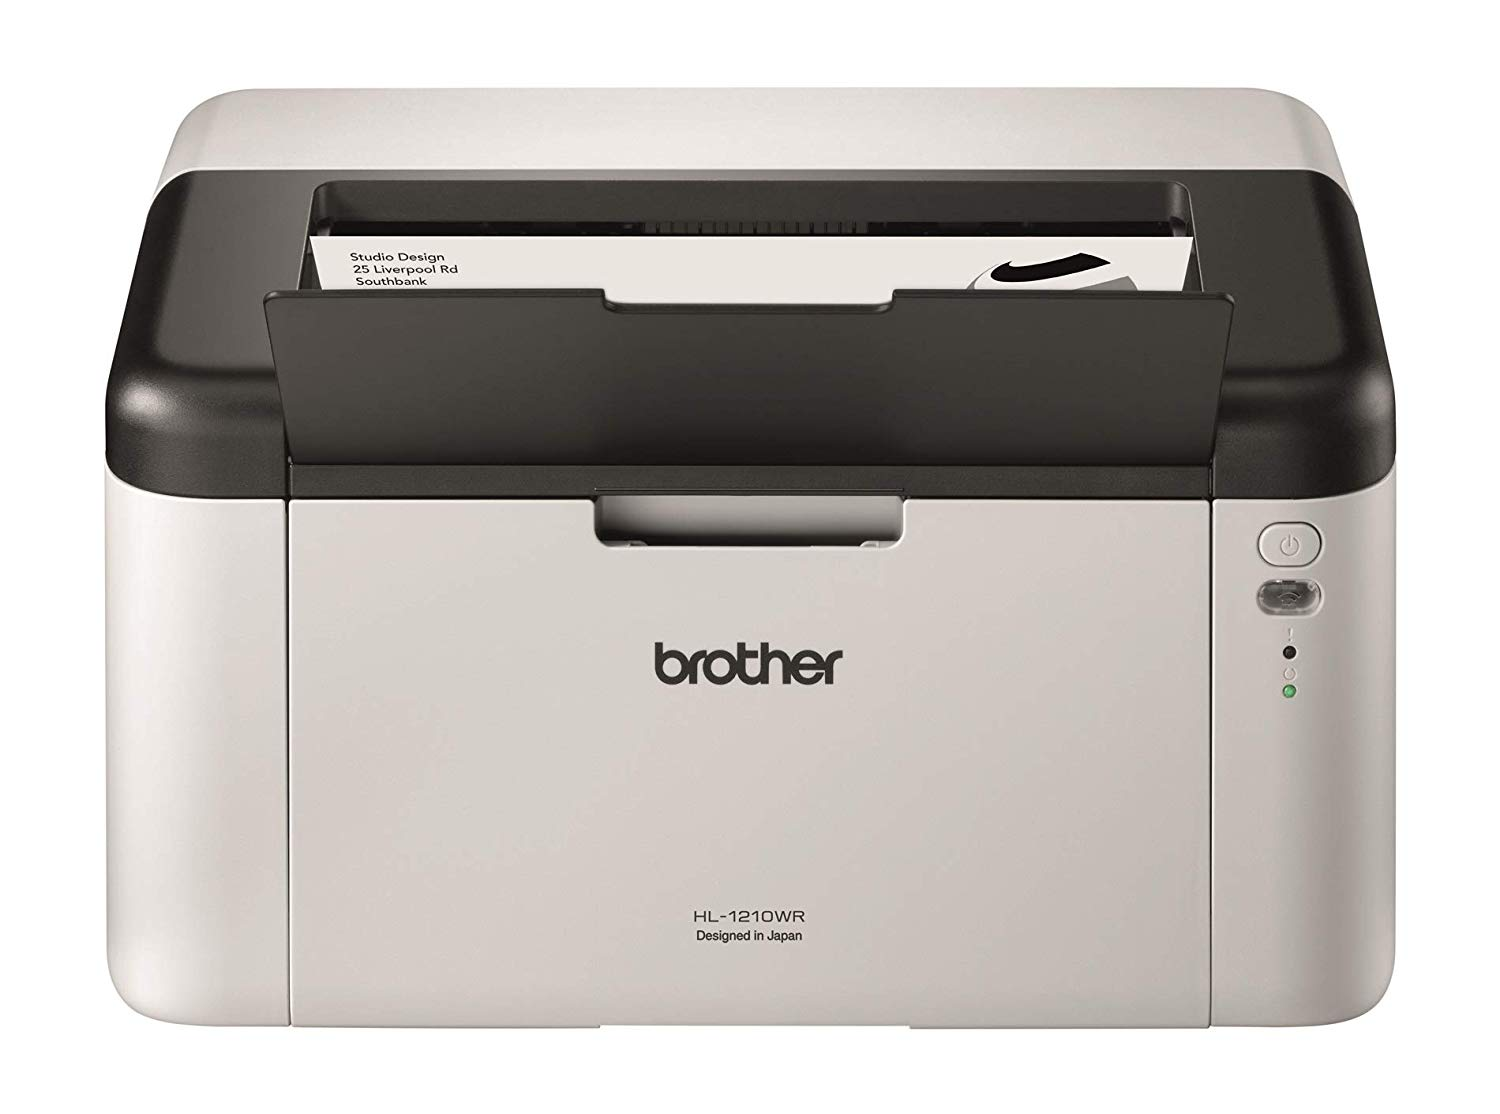 Brother HL 1210W A4 Mono Laser Printer